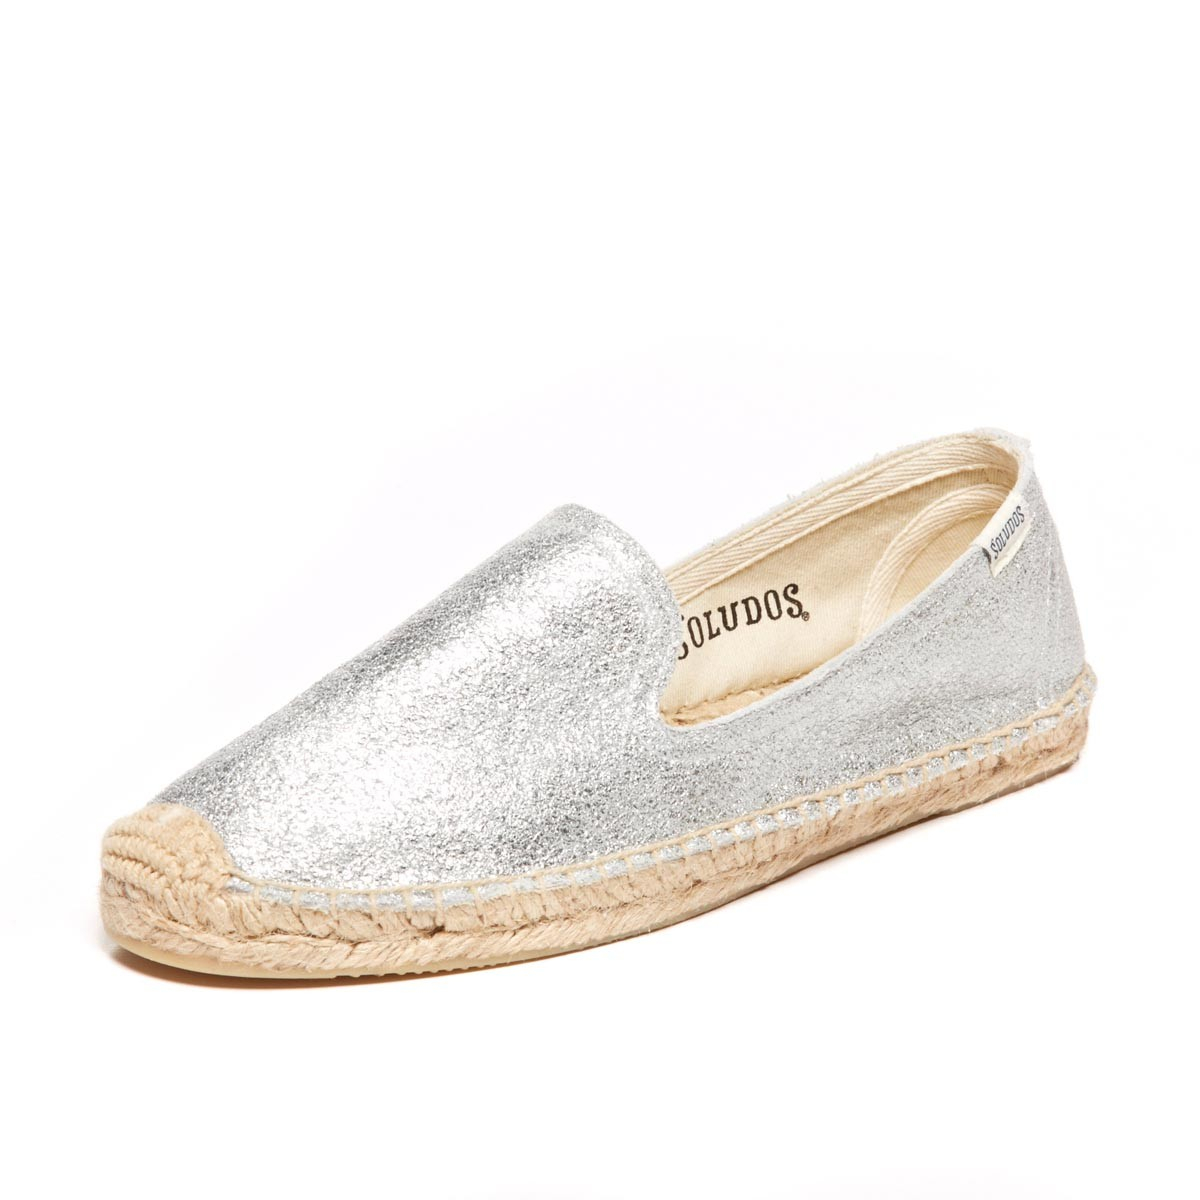 ed836b6e6b1 Lyst - Soludos Jupiter Leather Smoking Slipper in Metallic